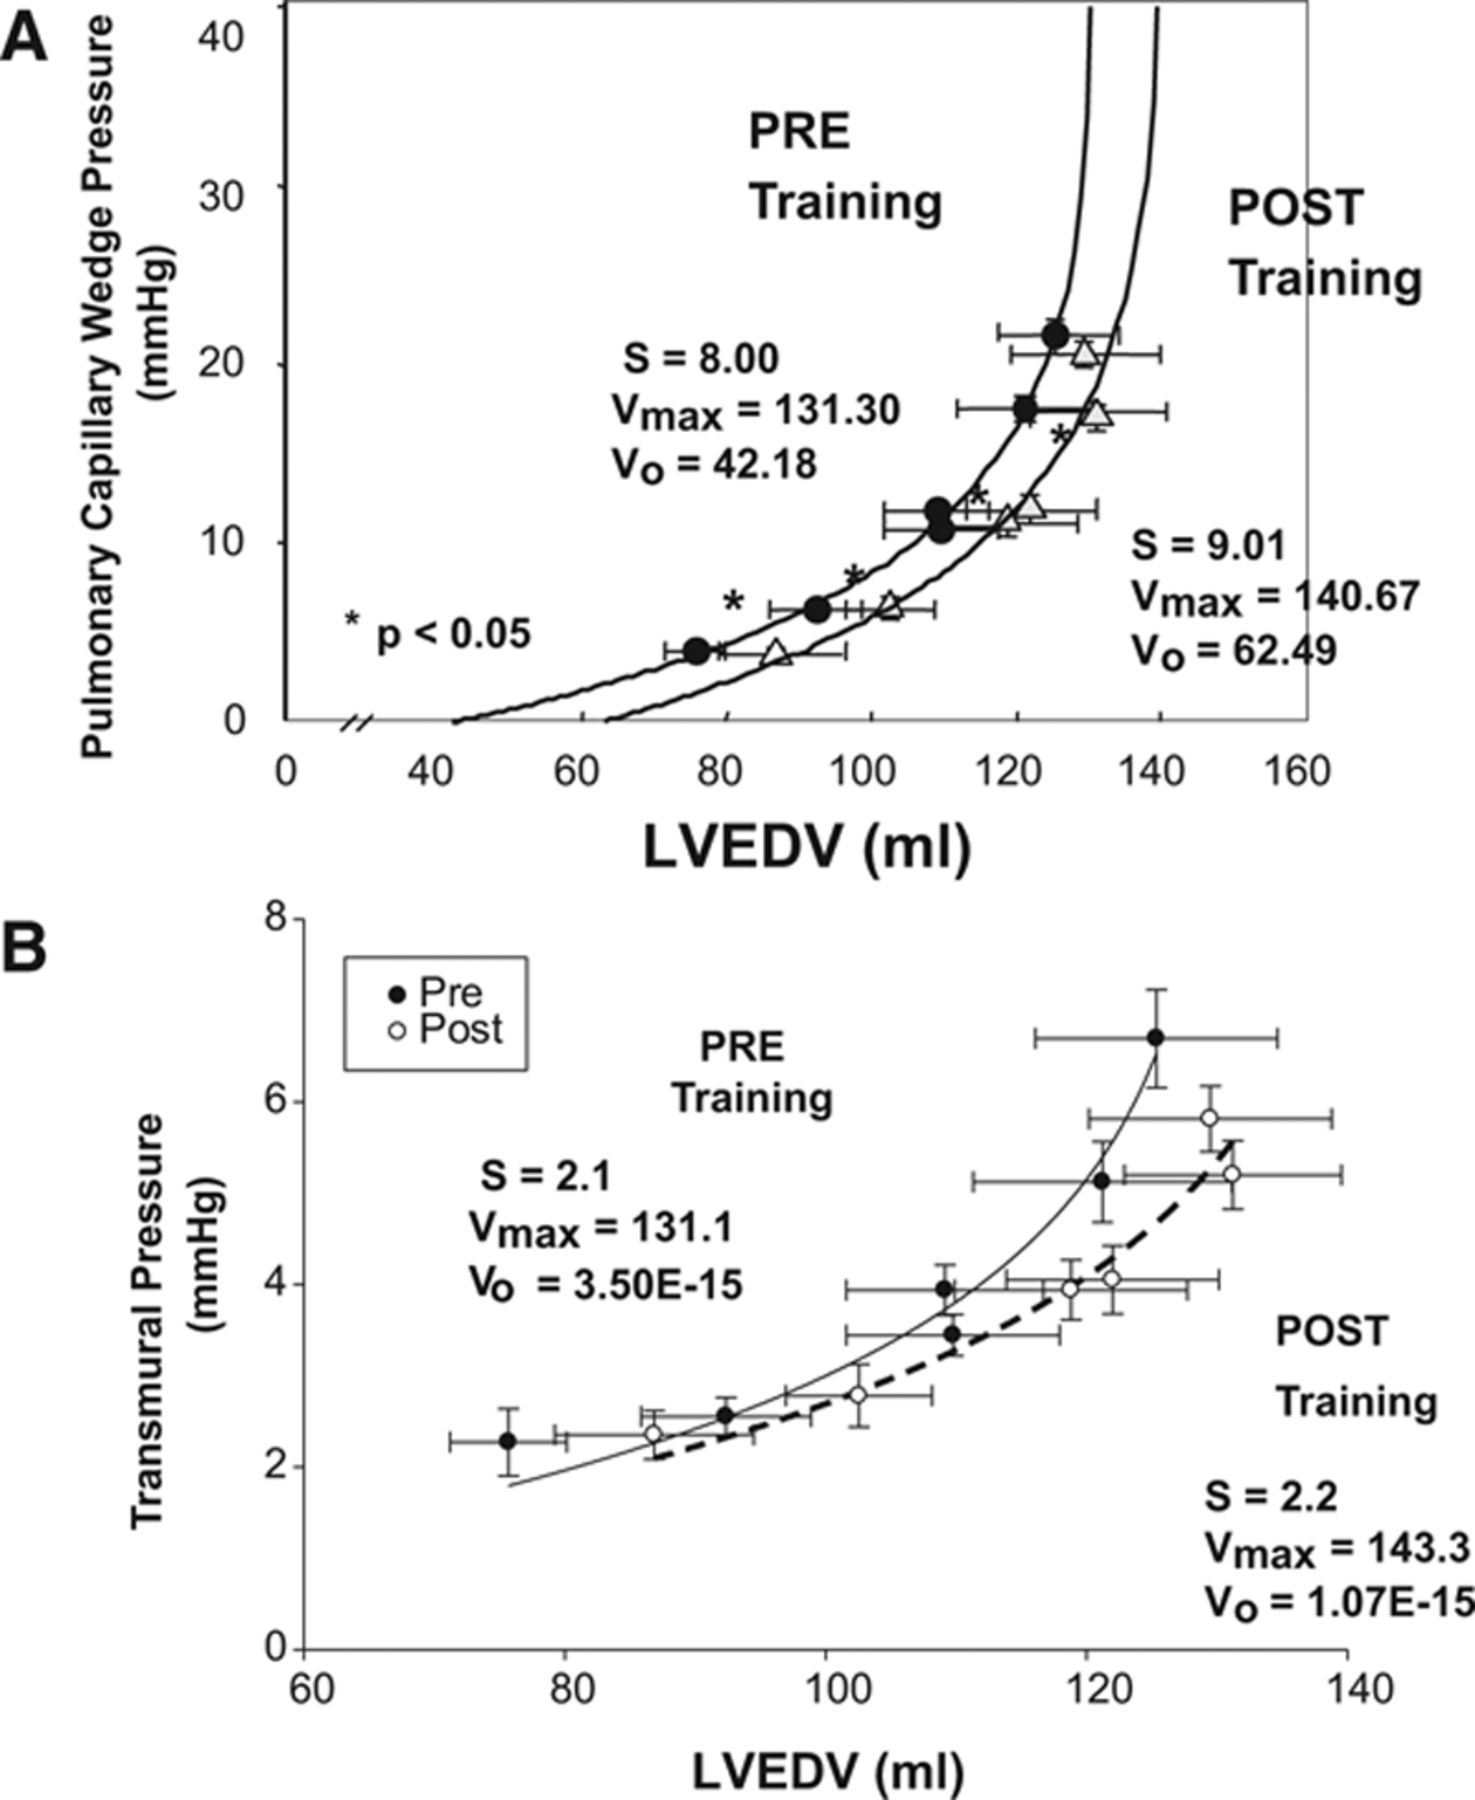 Cardiac Remodeling in Response to 1 Year of Intensive Endurance